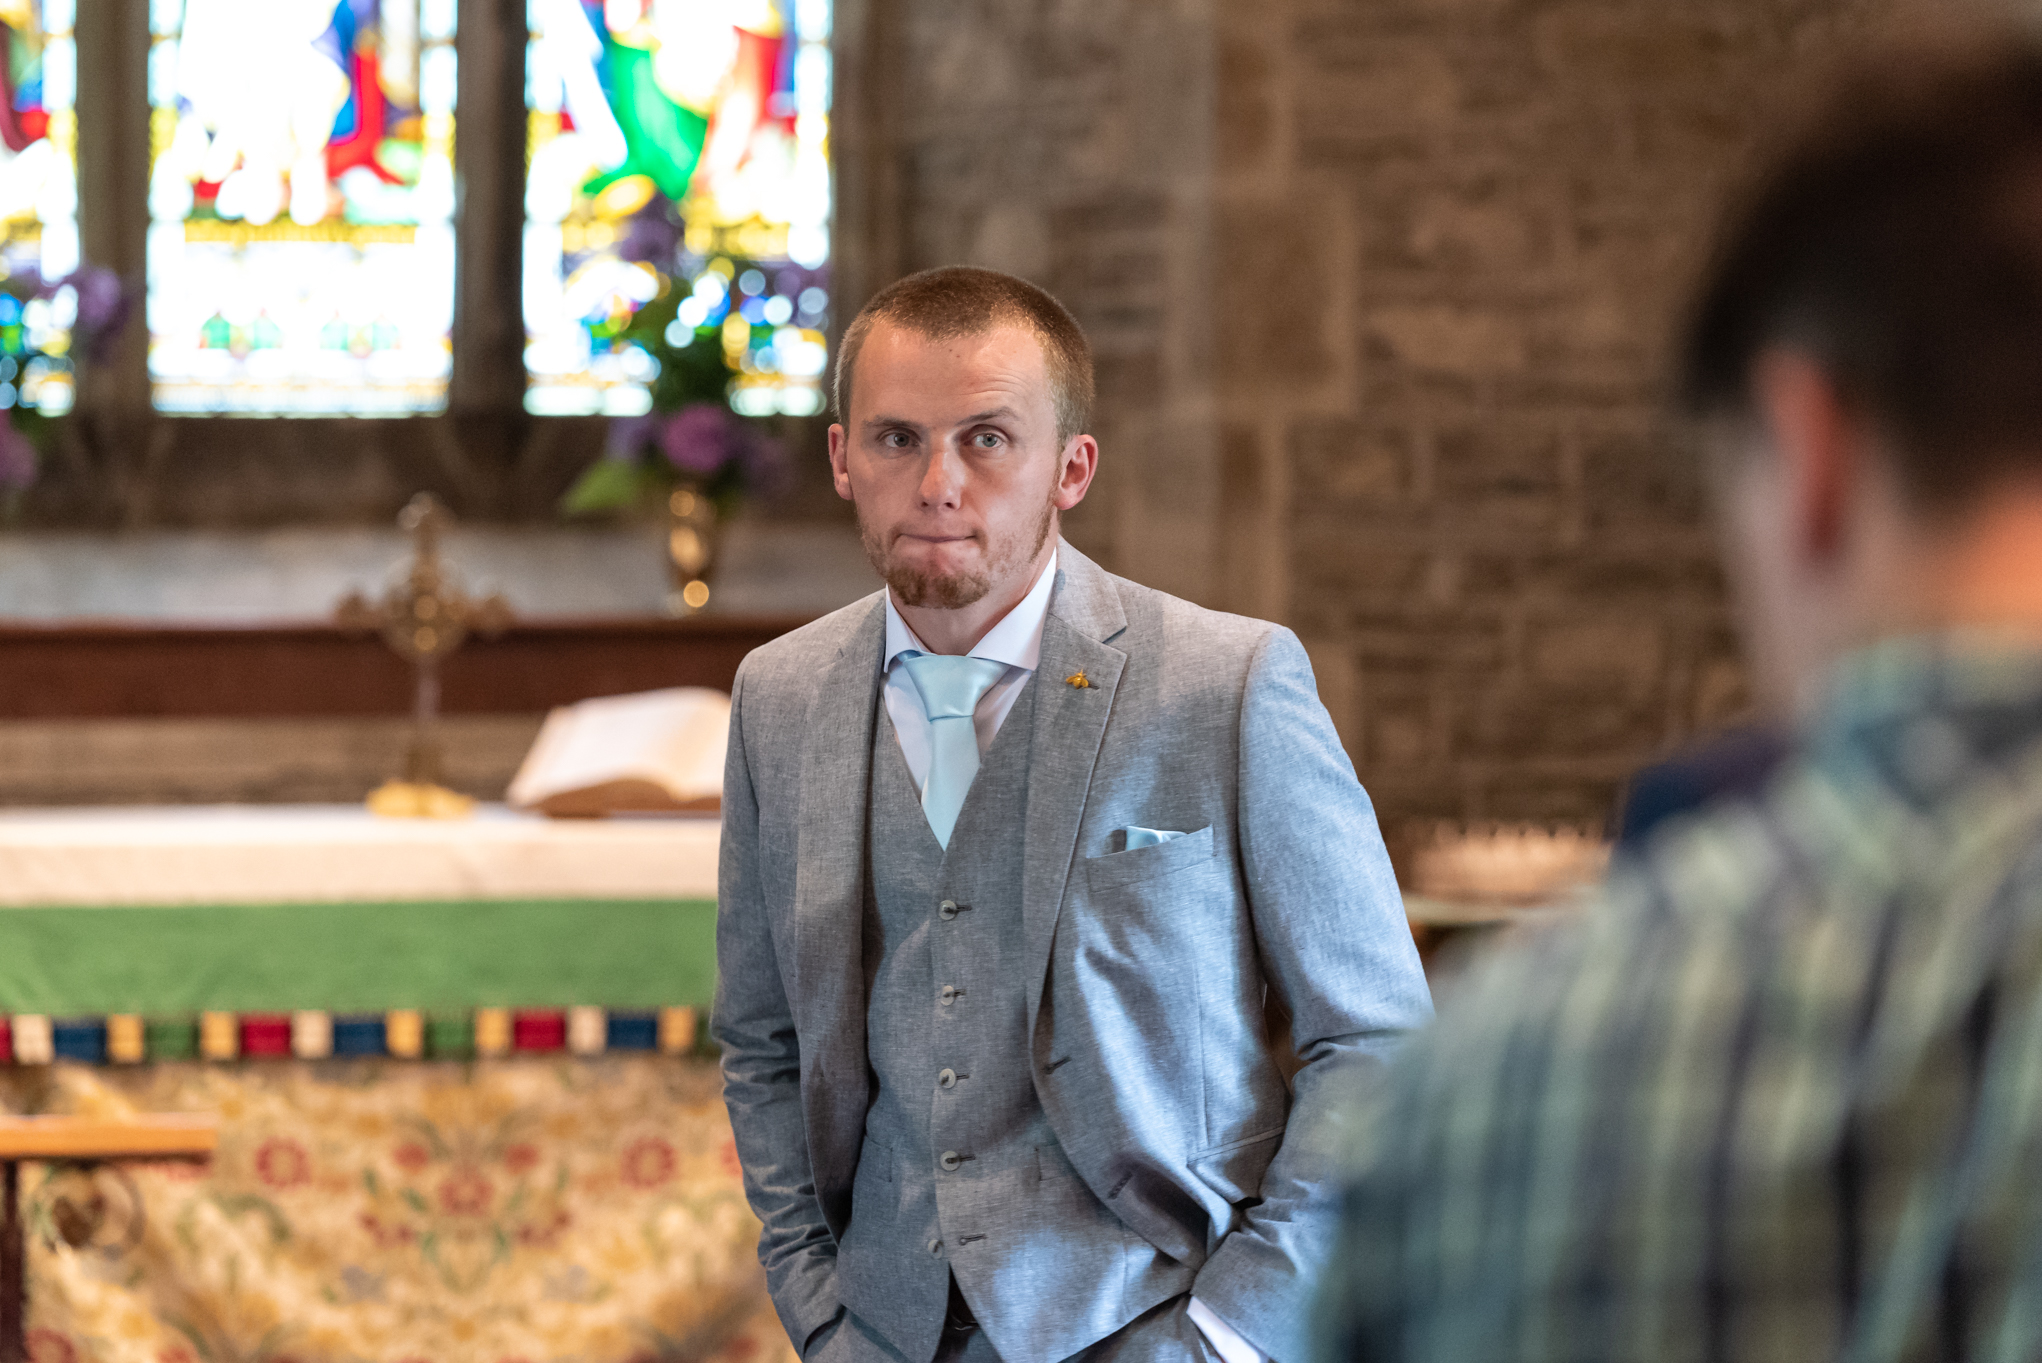 Copy of Nervous Looking Groom at Church